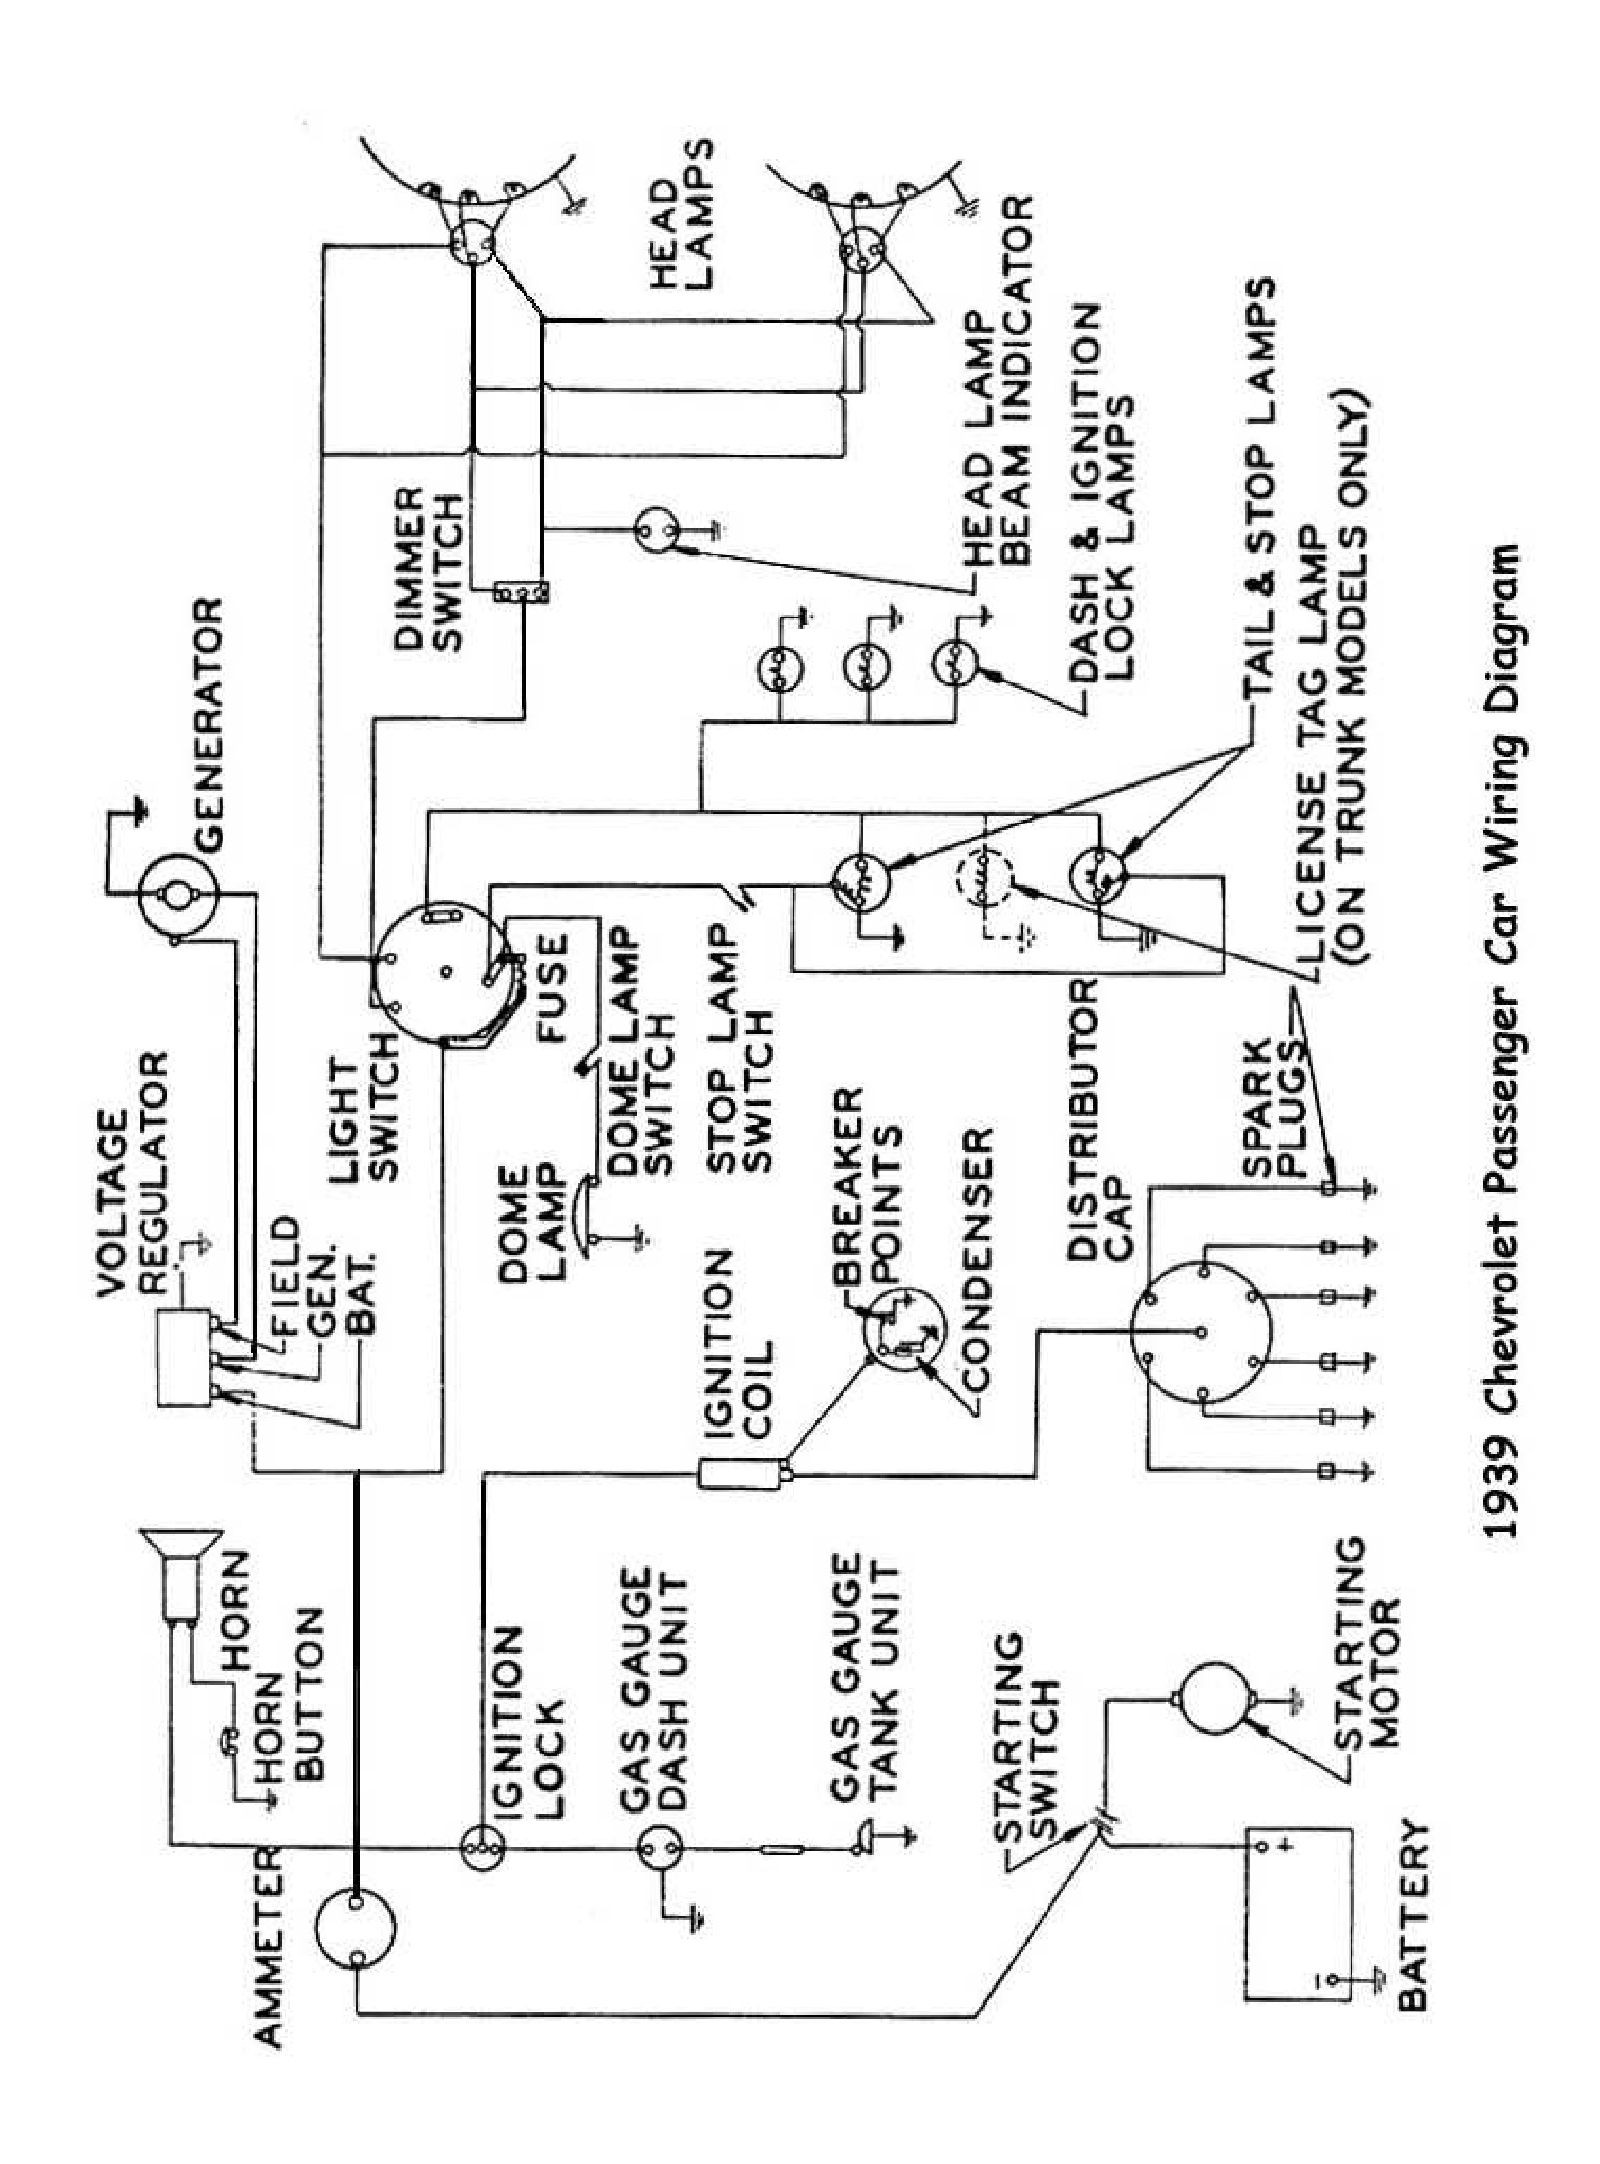 1951 Chevy Truck Wiring Diagram Chevy Wiring Diagrams